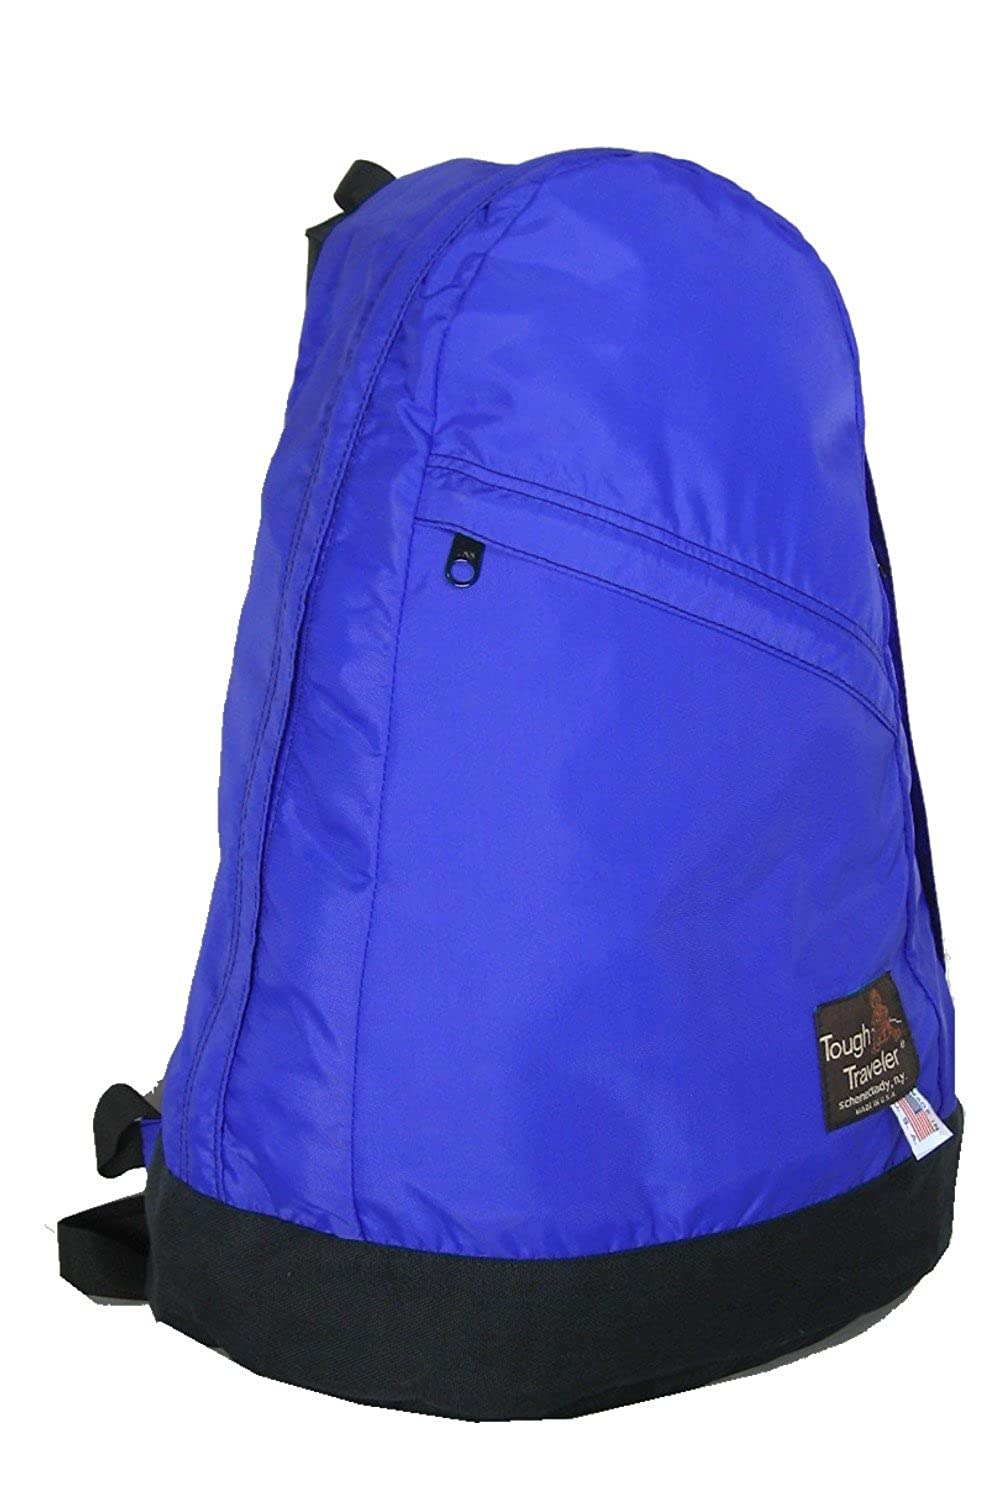 Made in USA Tough Traveler Odyssey Backpack